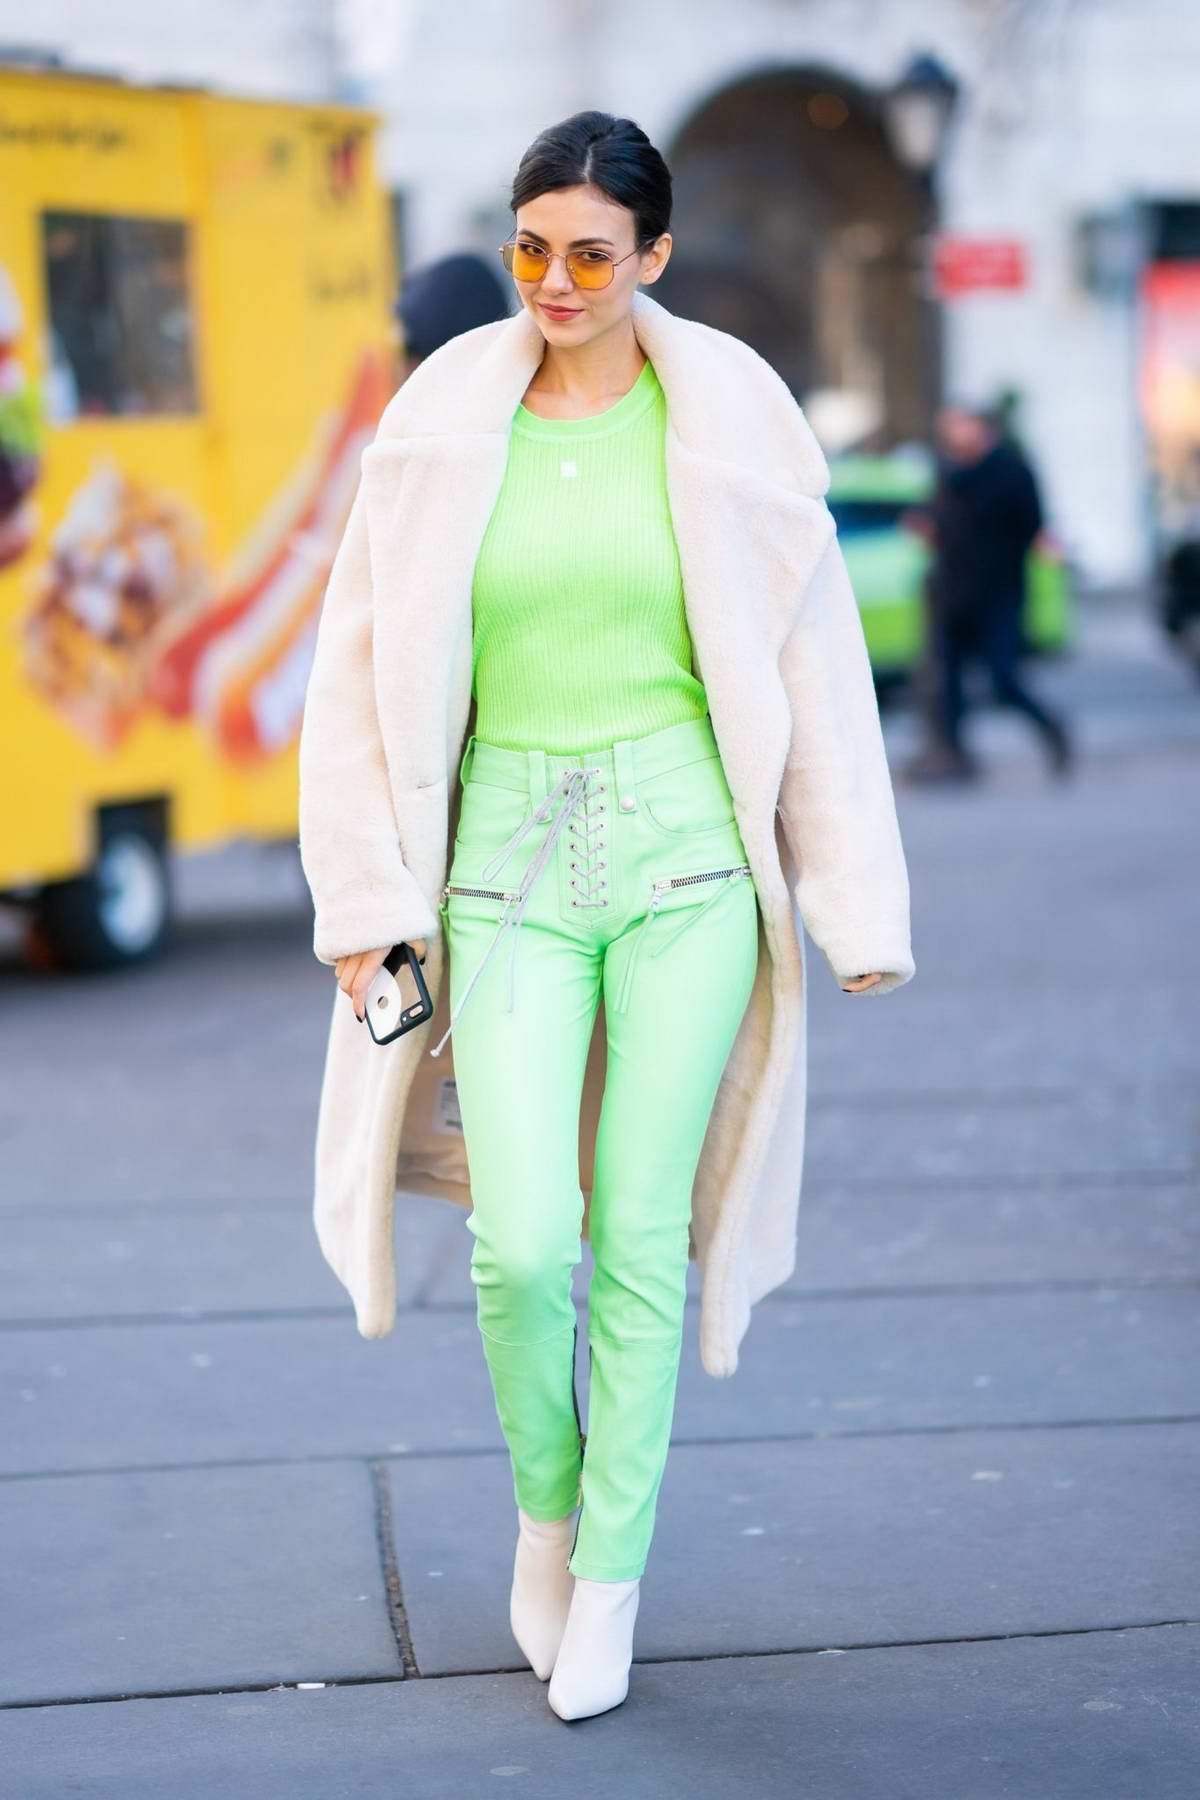 Victoria Justice seen wearing a lime green top with matching pants while out and about in New York City